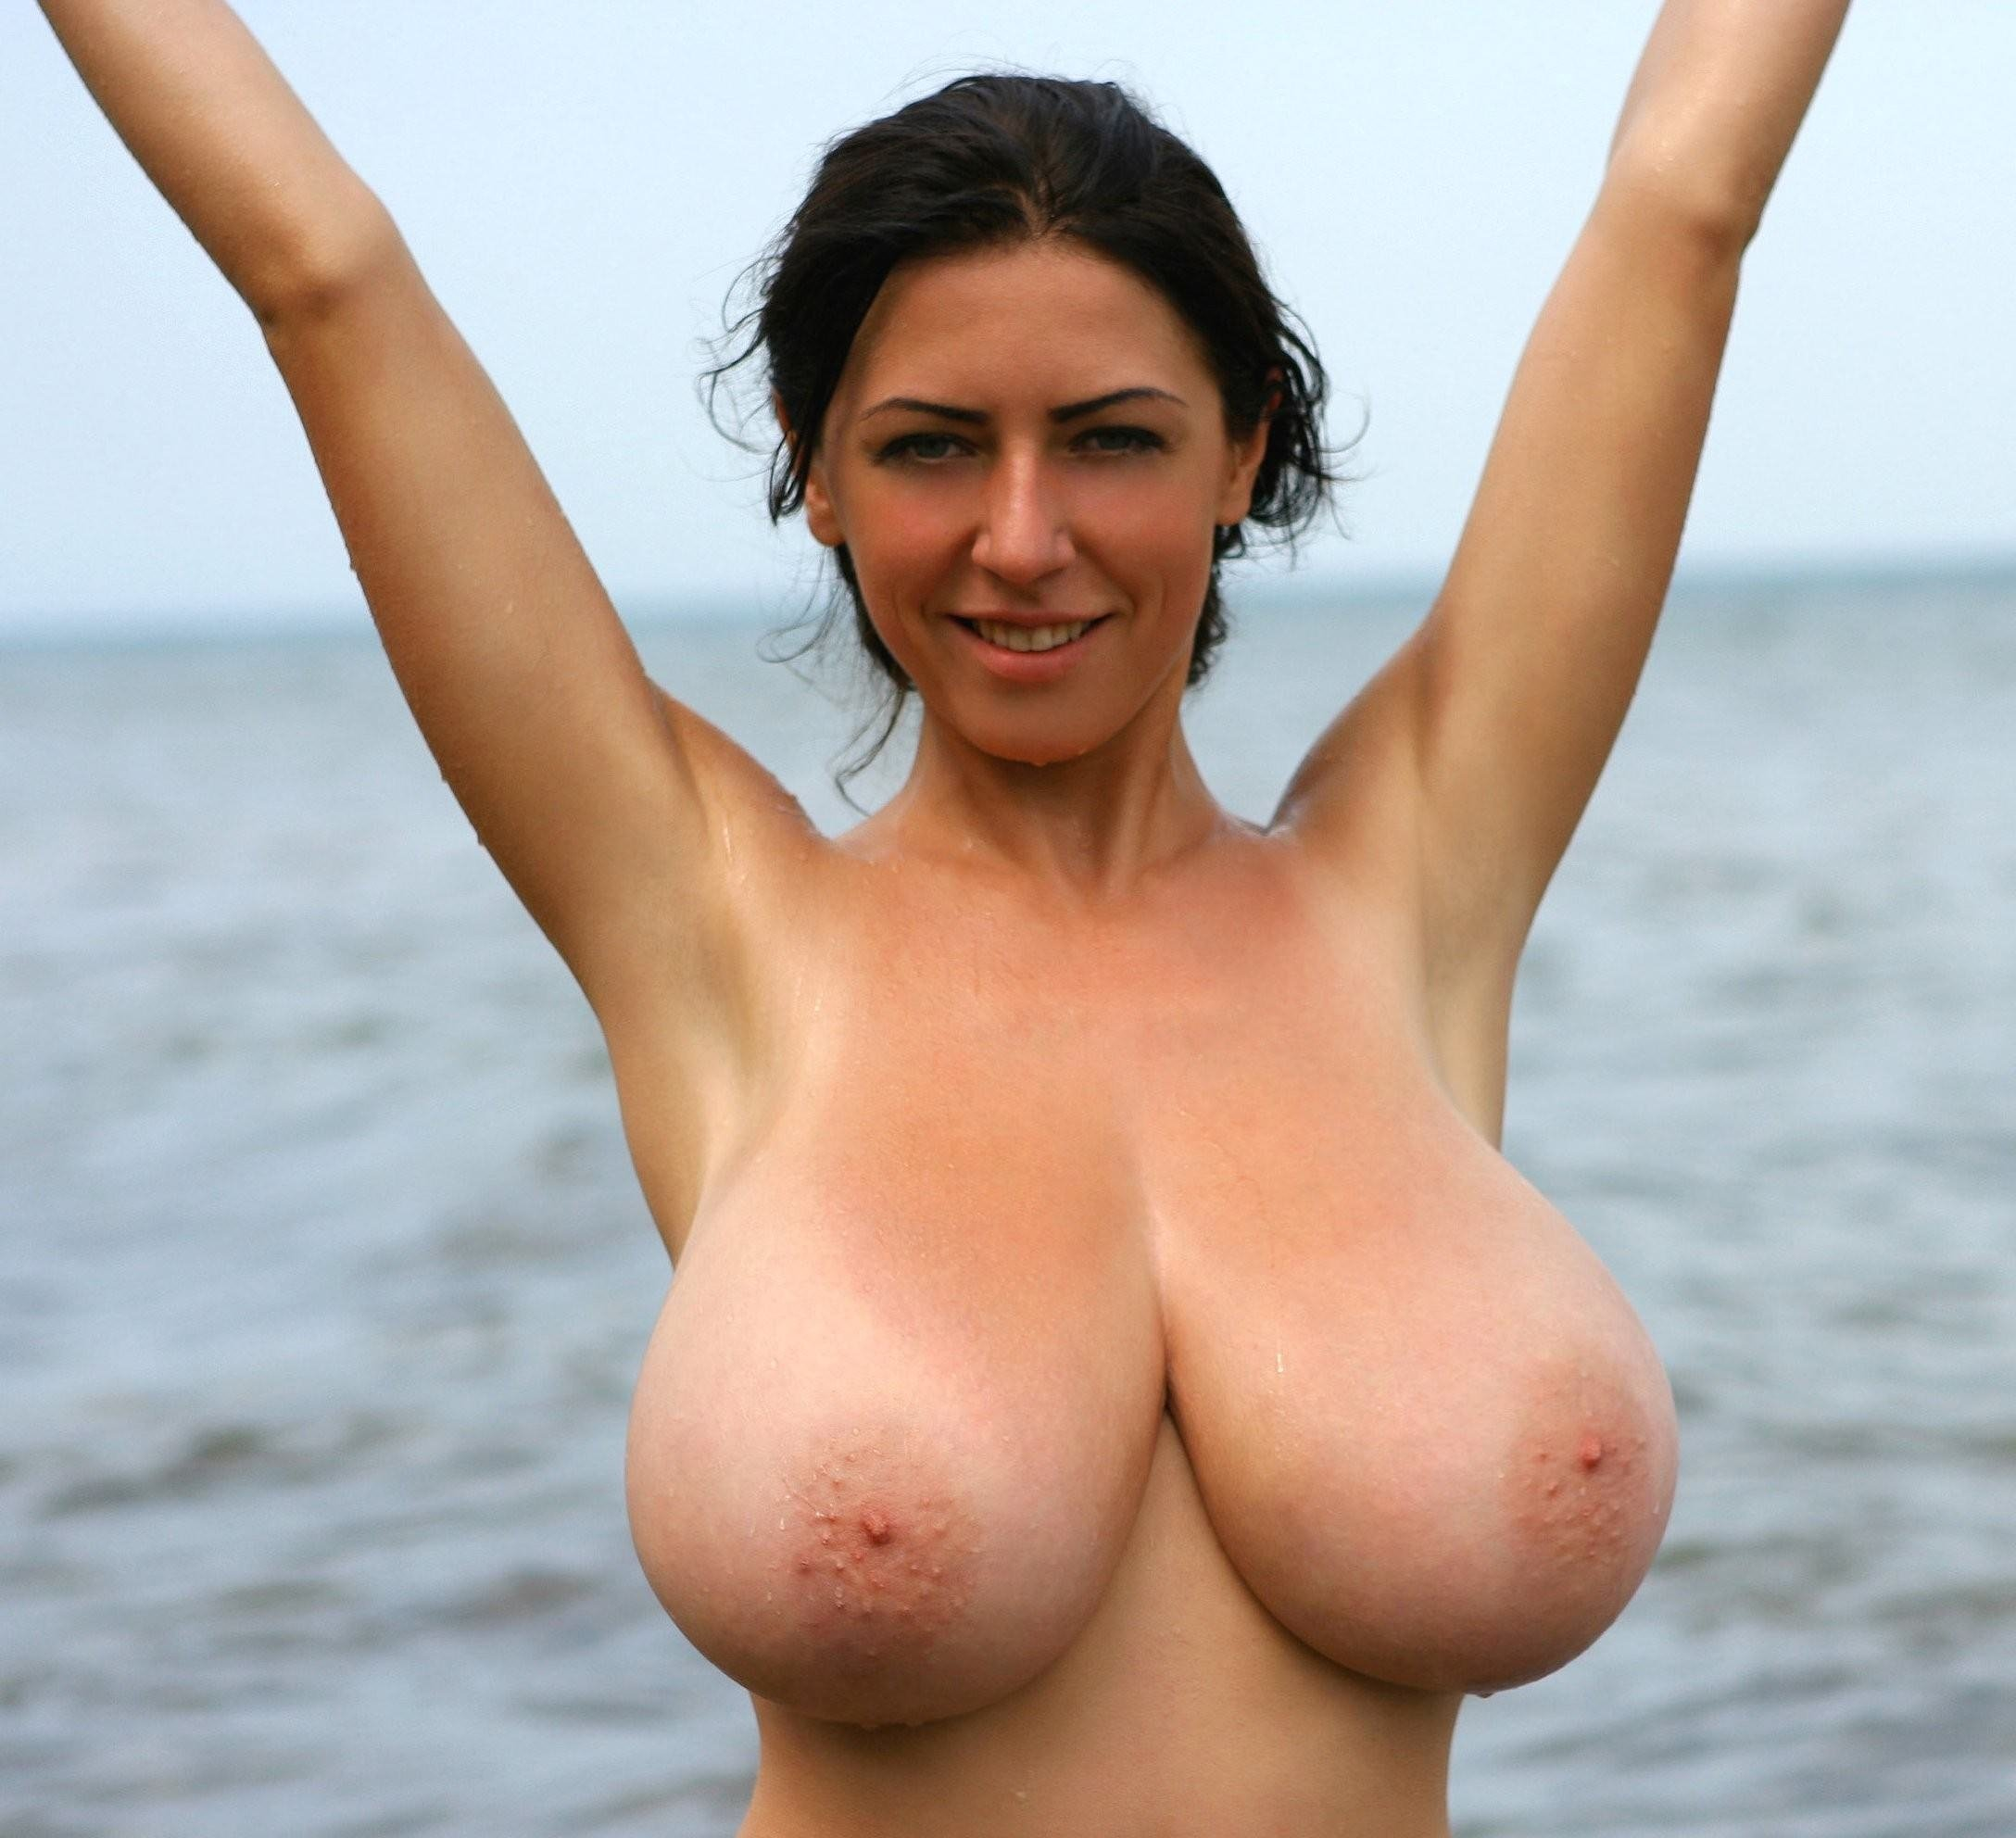 Free Pics Of Women With Big Tits